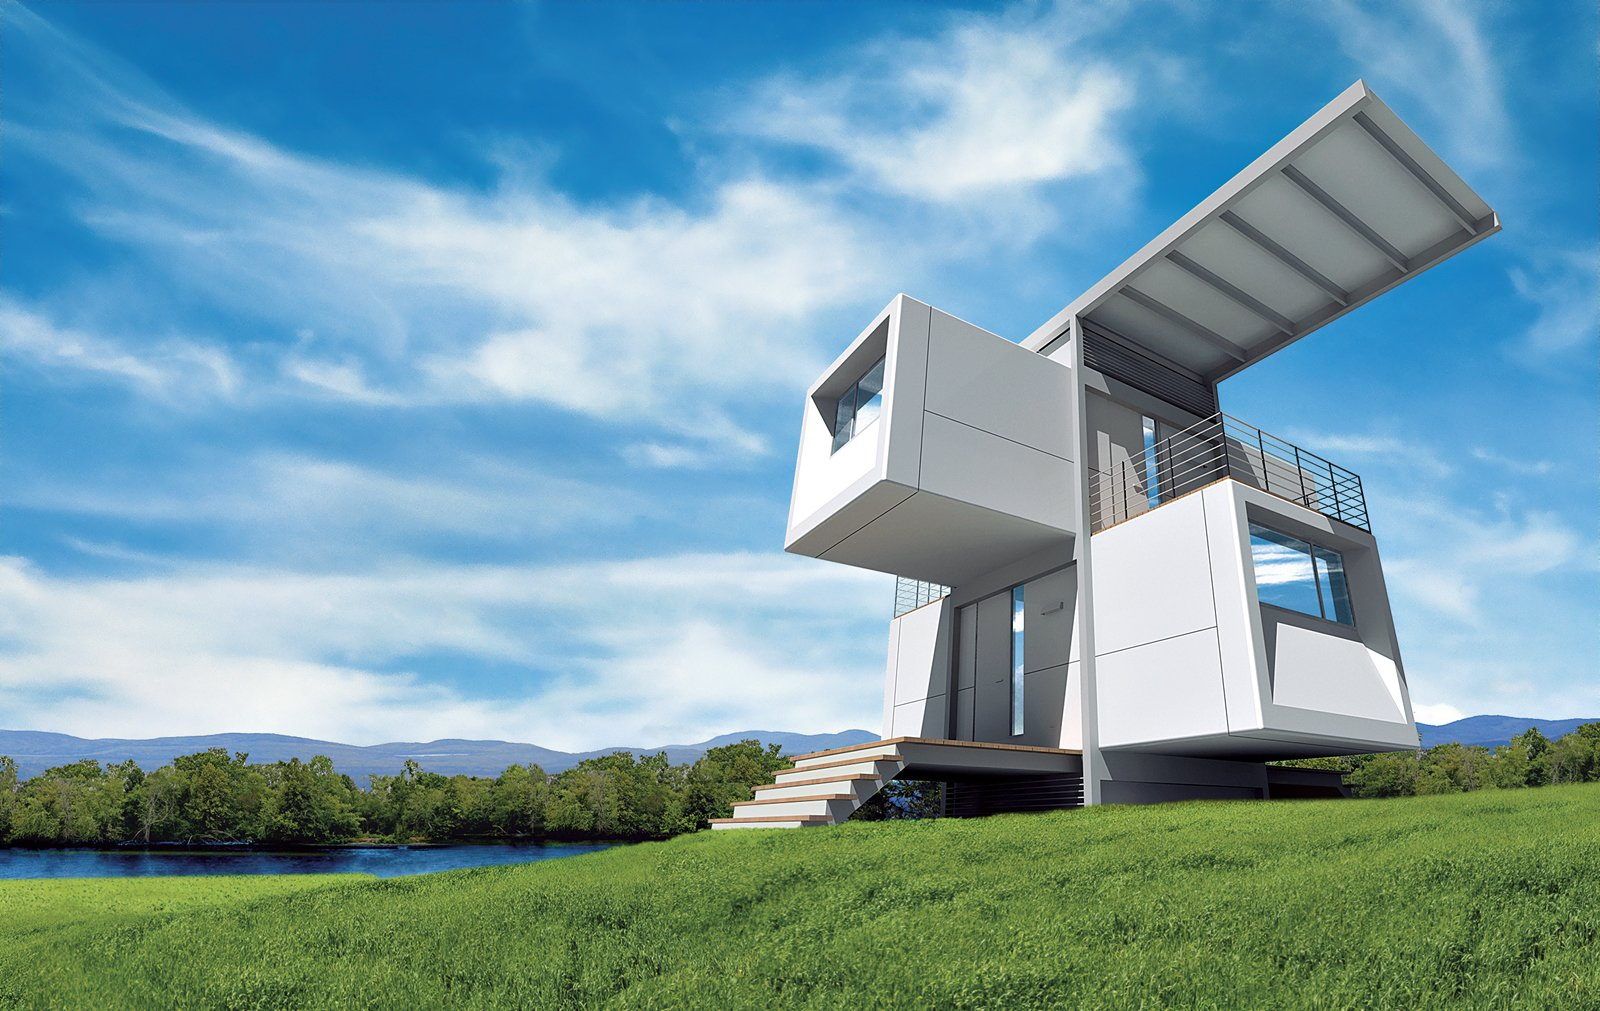 In the rendering for the zeroHouse, the building appears to be both a harmonious addition to the landscape and a harbinger of future architectural forms.  Prefab